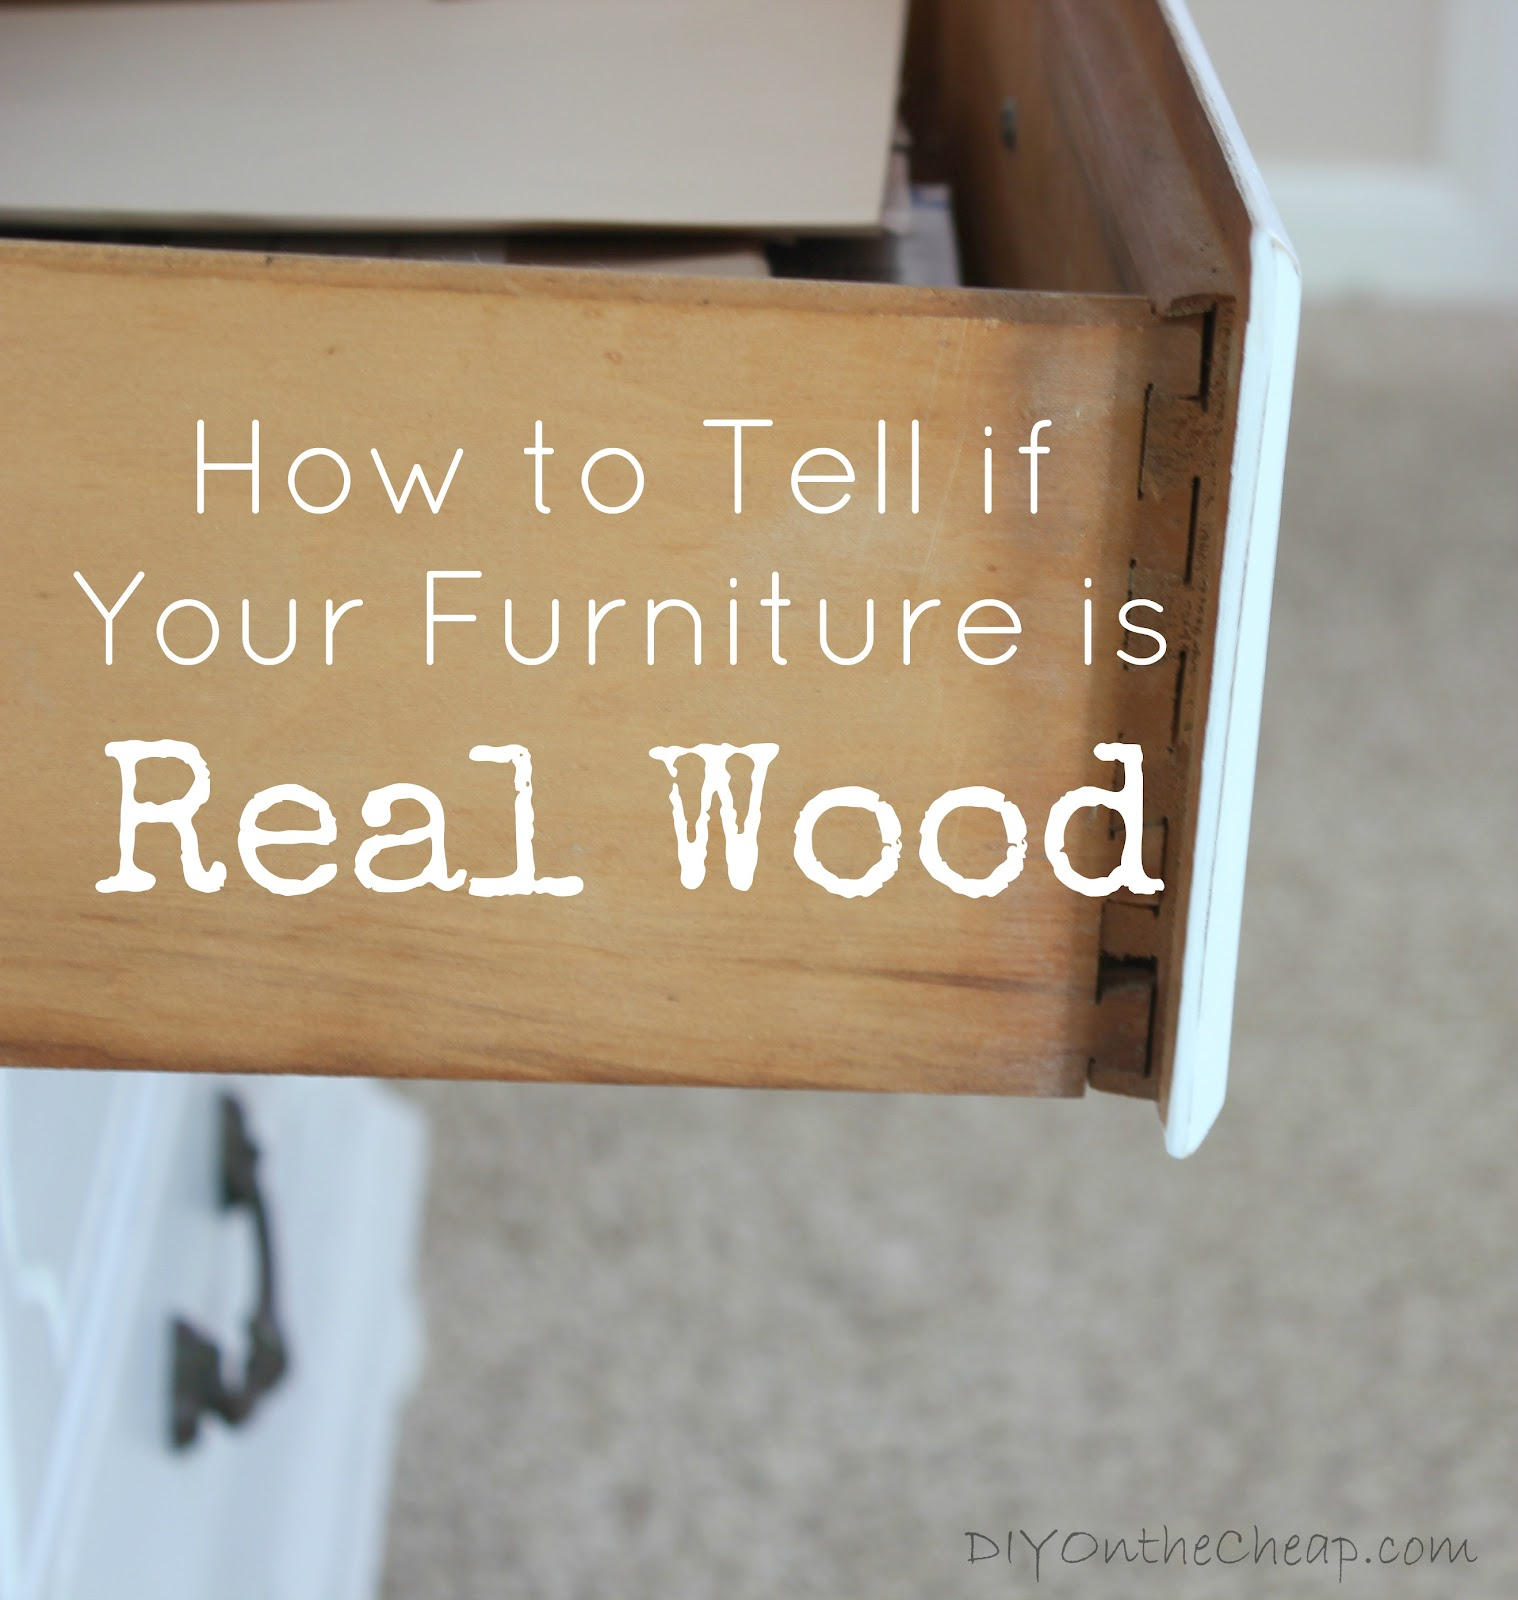 I was recently asked this question by a reader and thought it would be a great blog post topic how to tell if wood furniture is real or fake